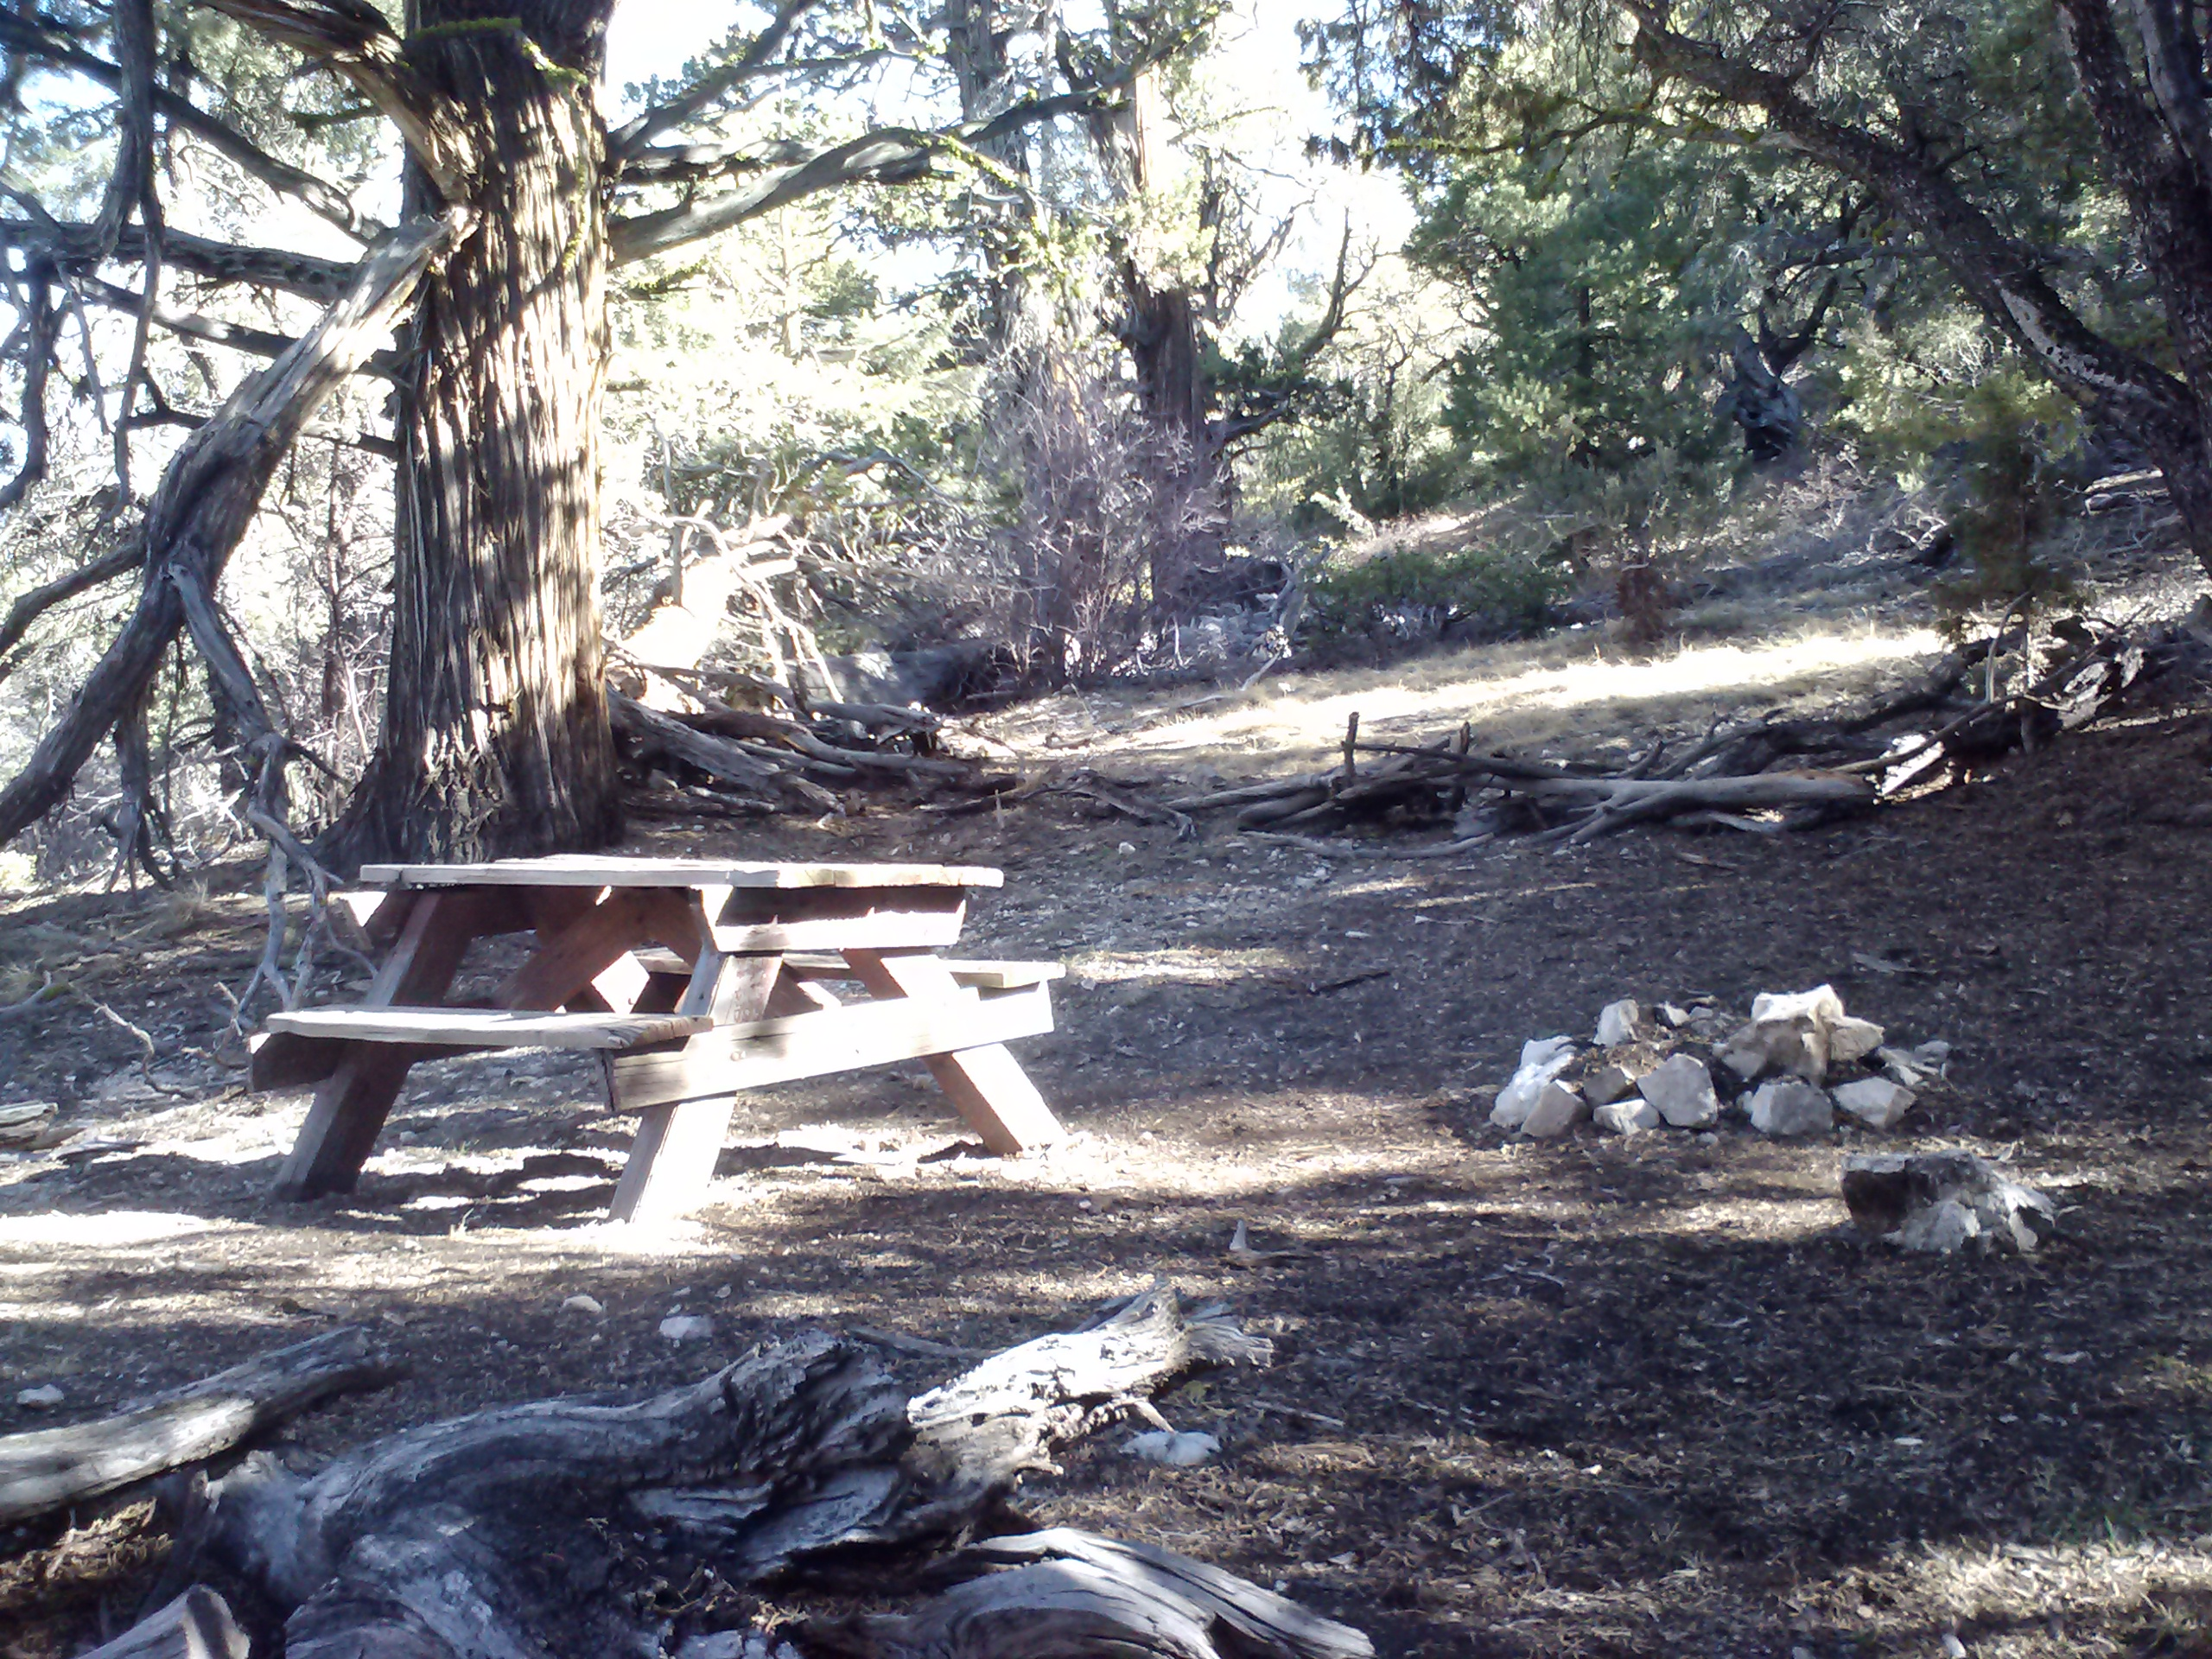 An unexpected little picnic table